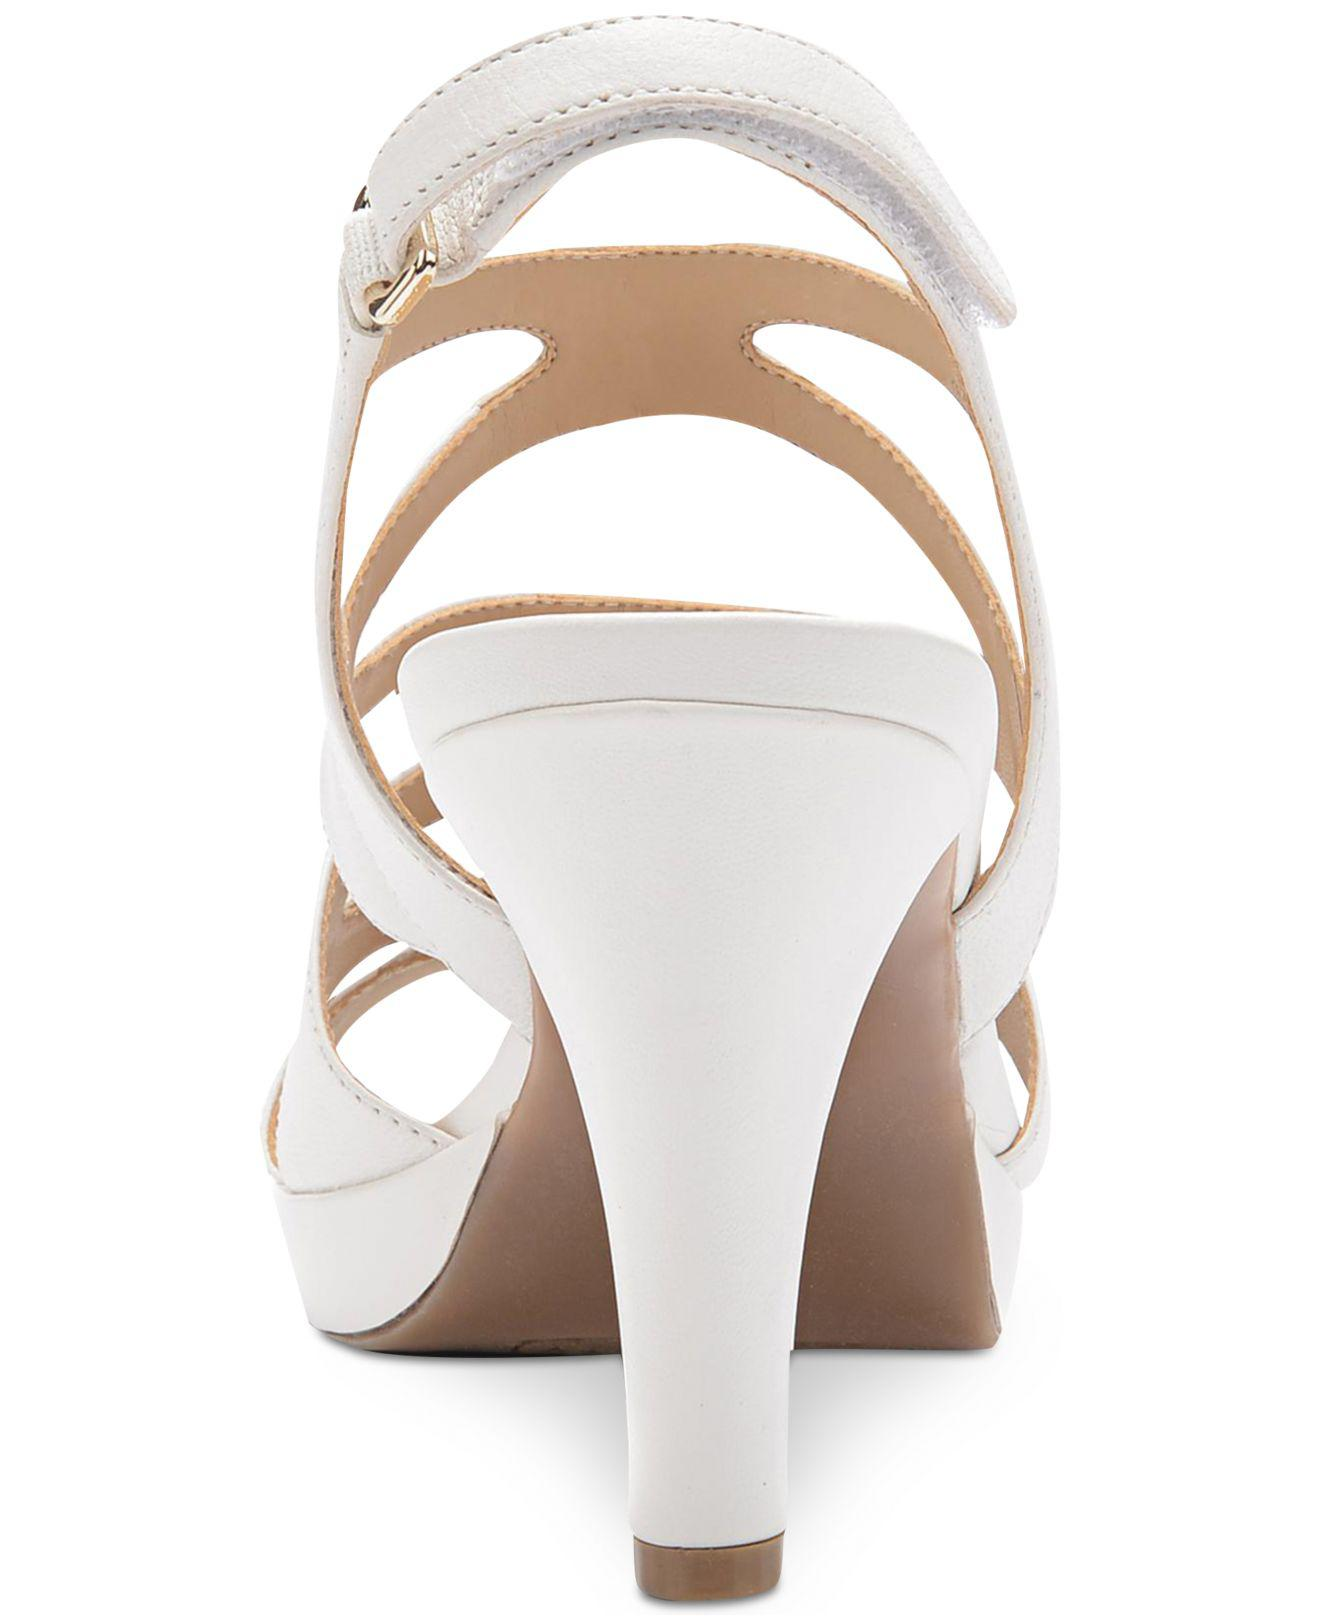 52b9a568f01 Naturalizer - White Pressely Platform Dress Sandal - Lyst. View fullscreen